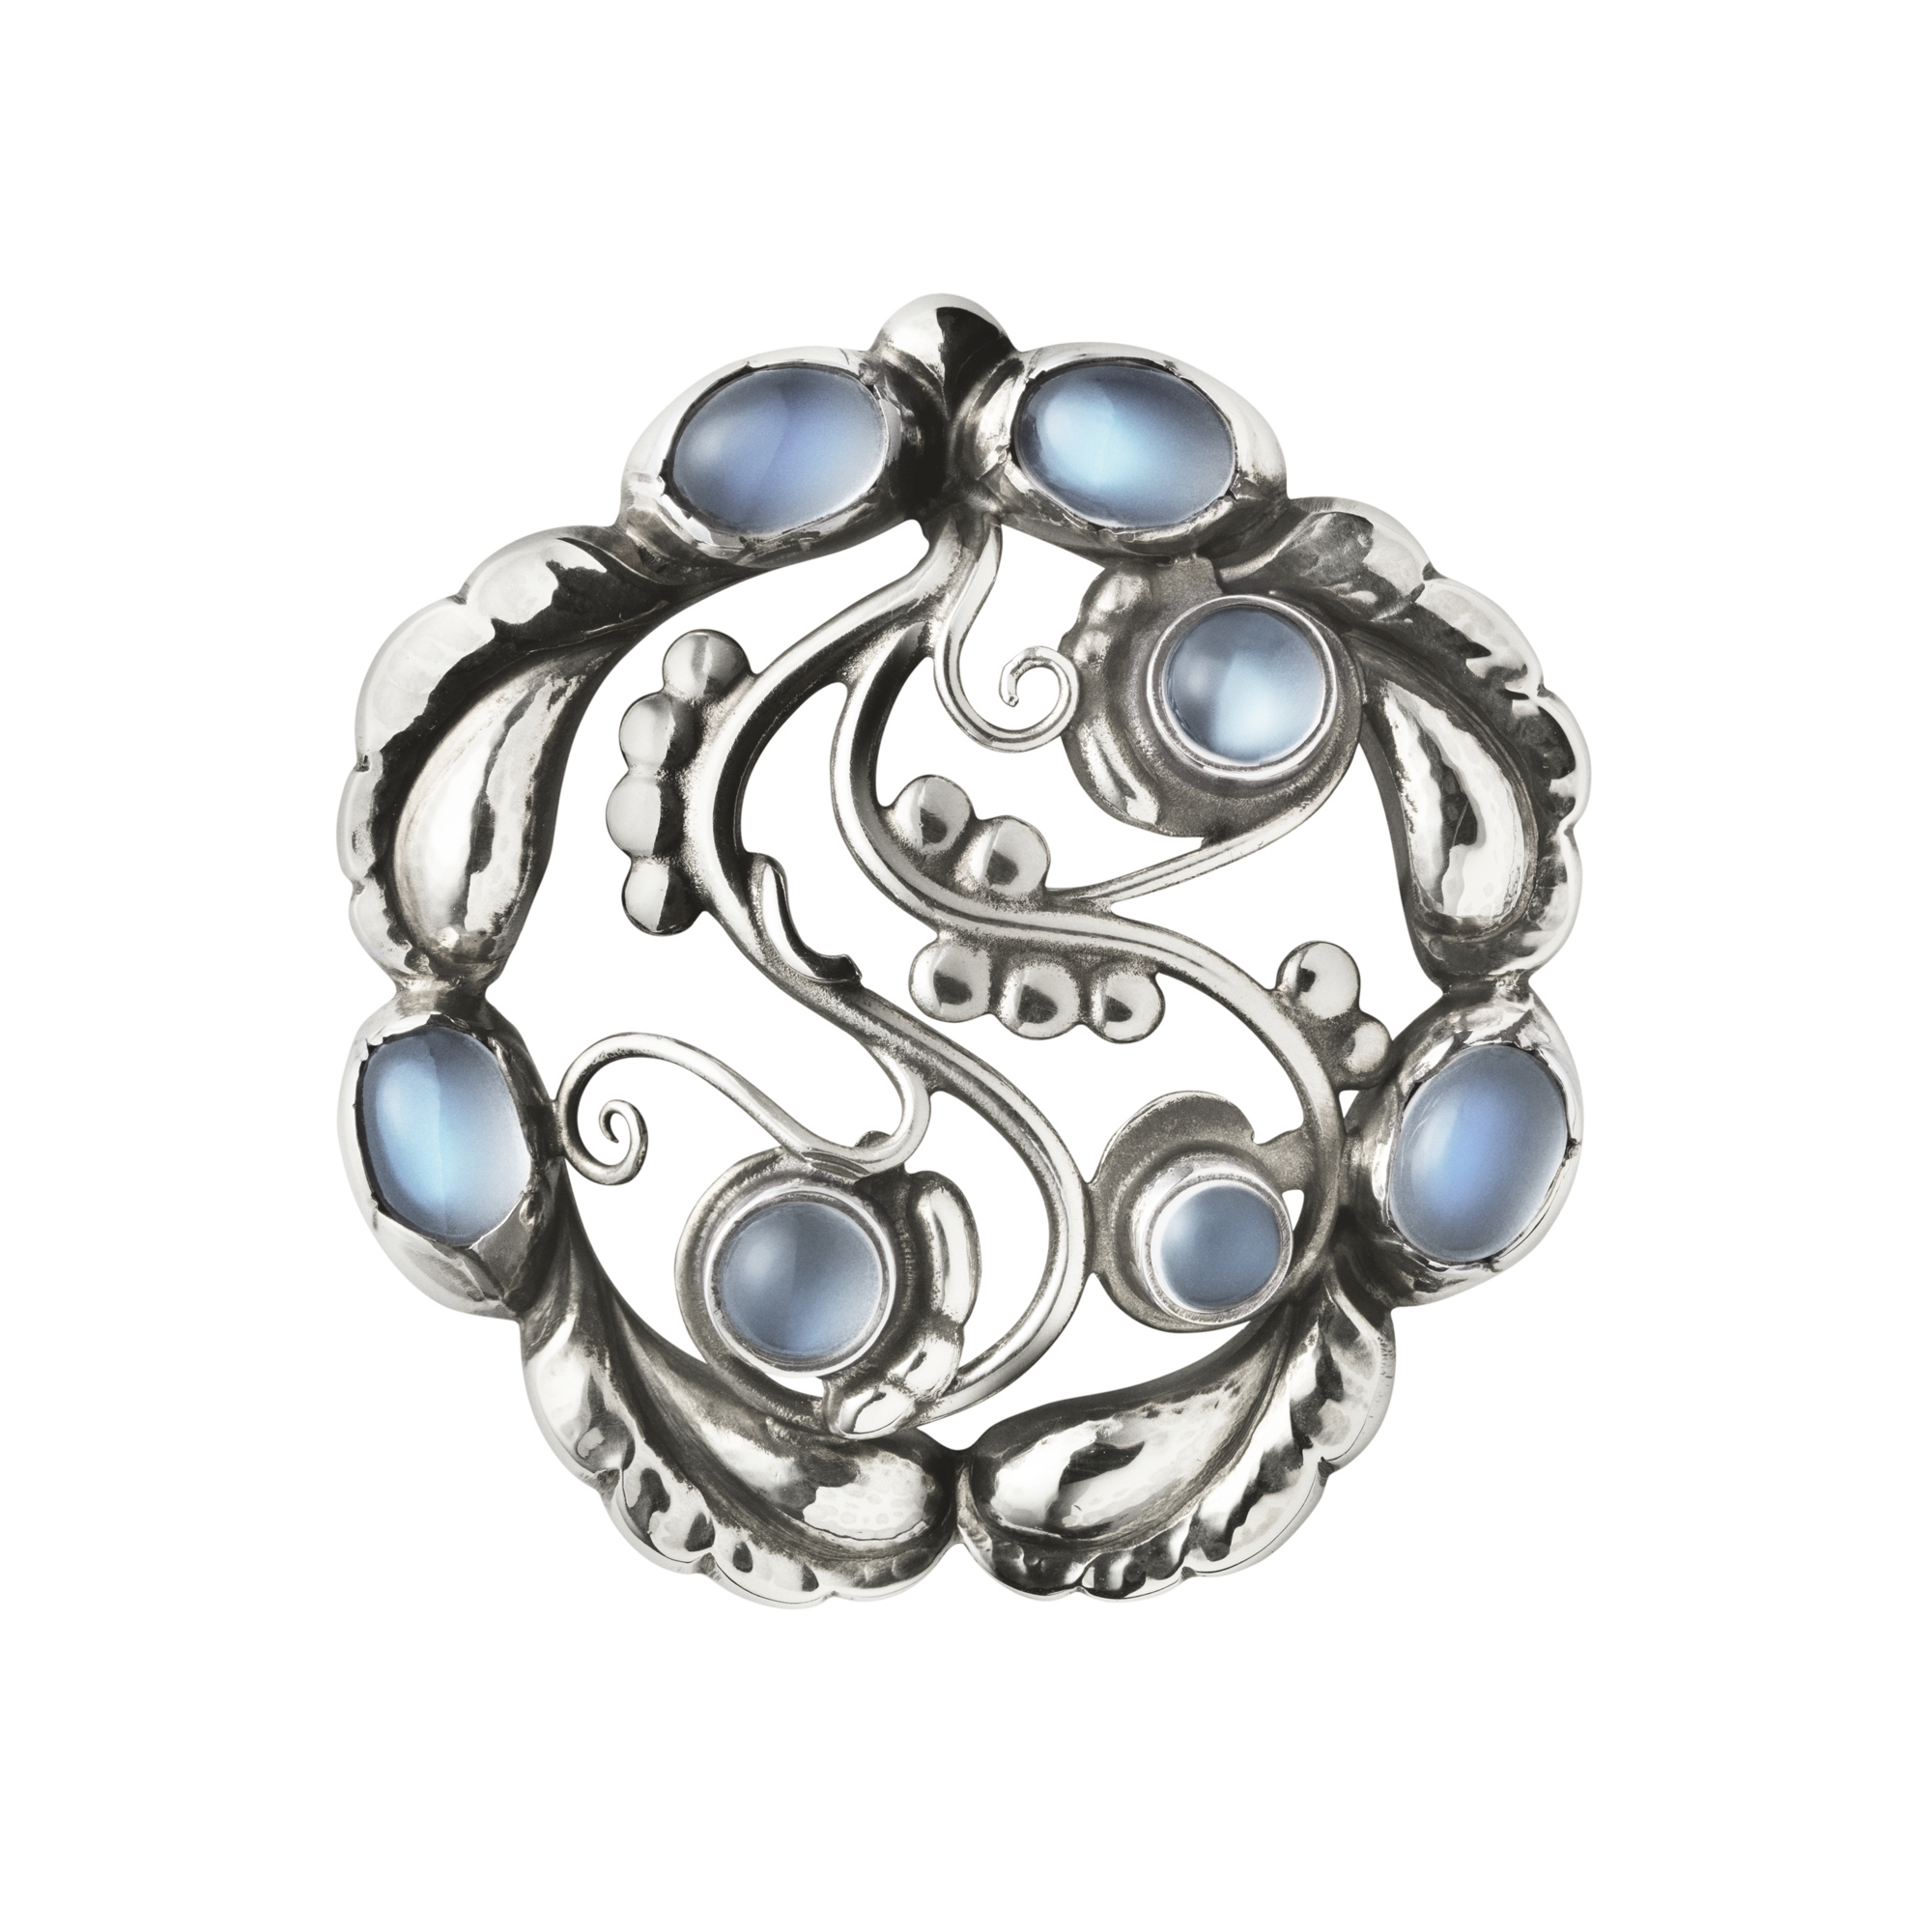 Georg Jensen Moonlight Sterling Silver Moonstone Brooch